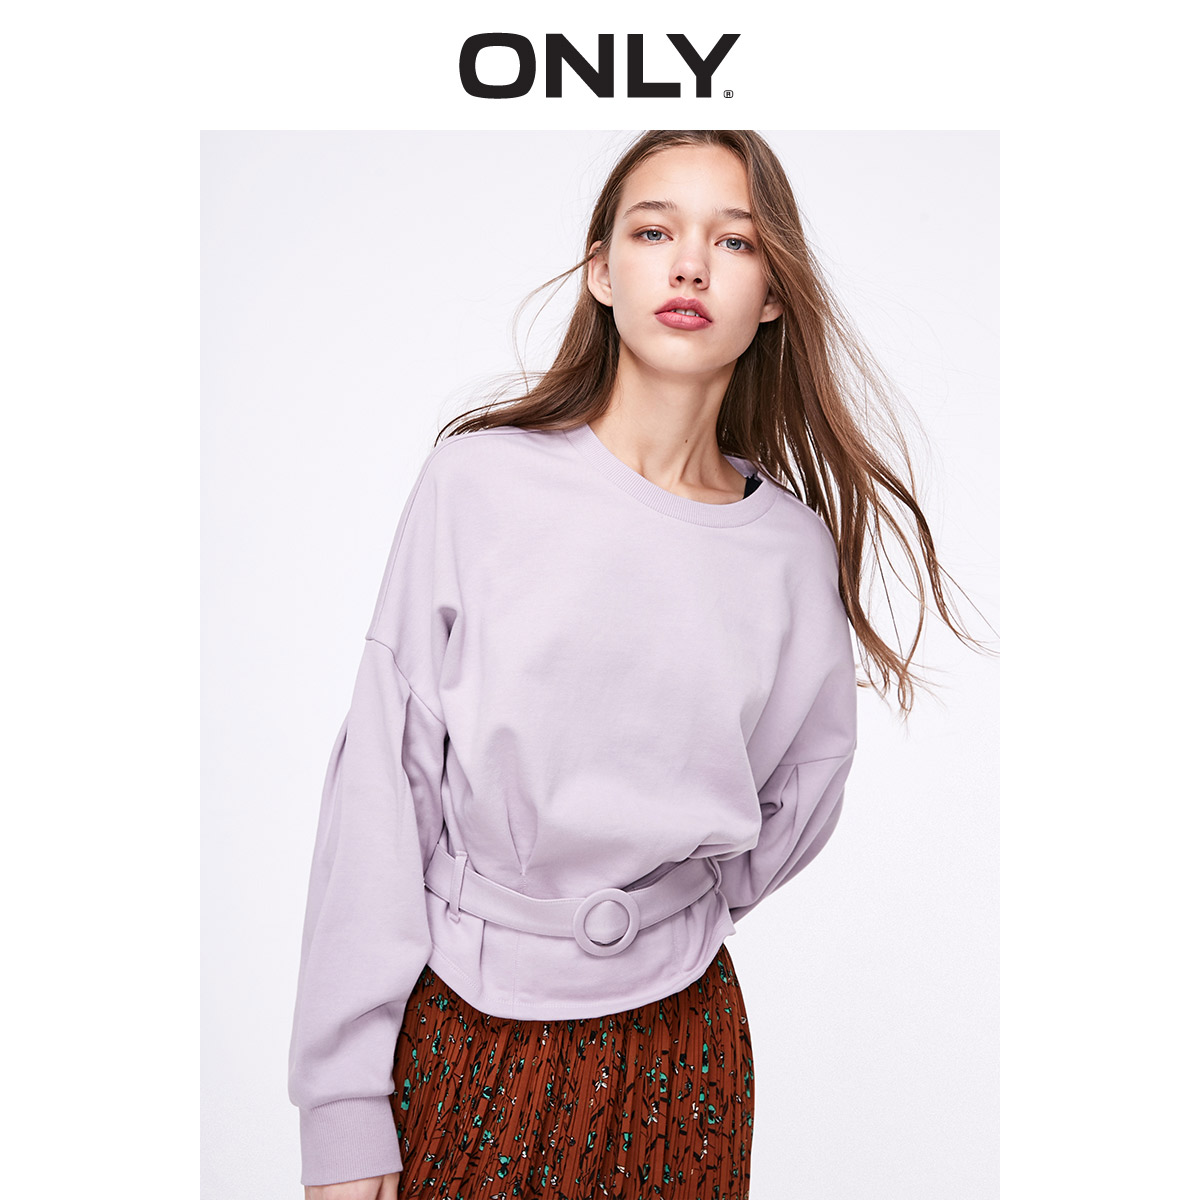 ONLY Winter Women's Short Loose Fit Batwing Sleeves Pullover Sweatshirt | 11919S554